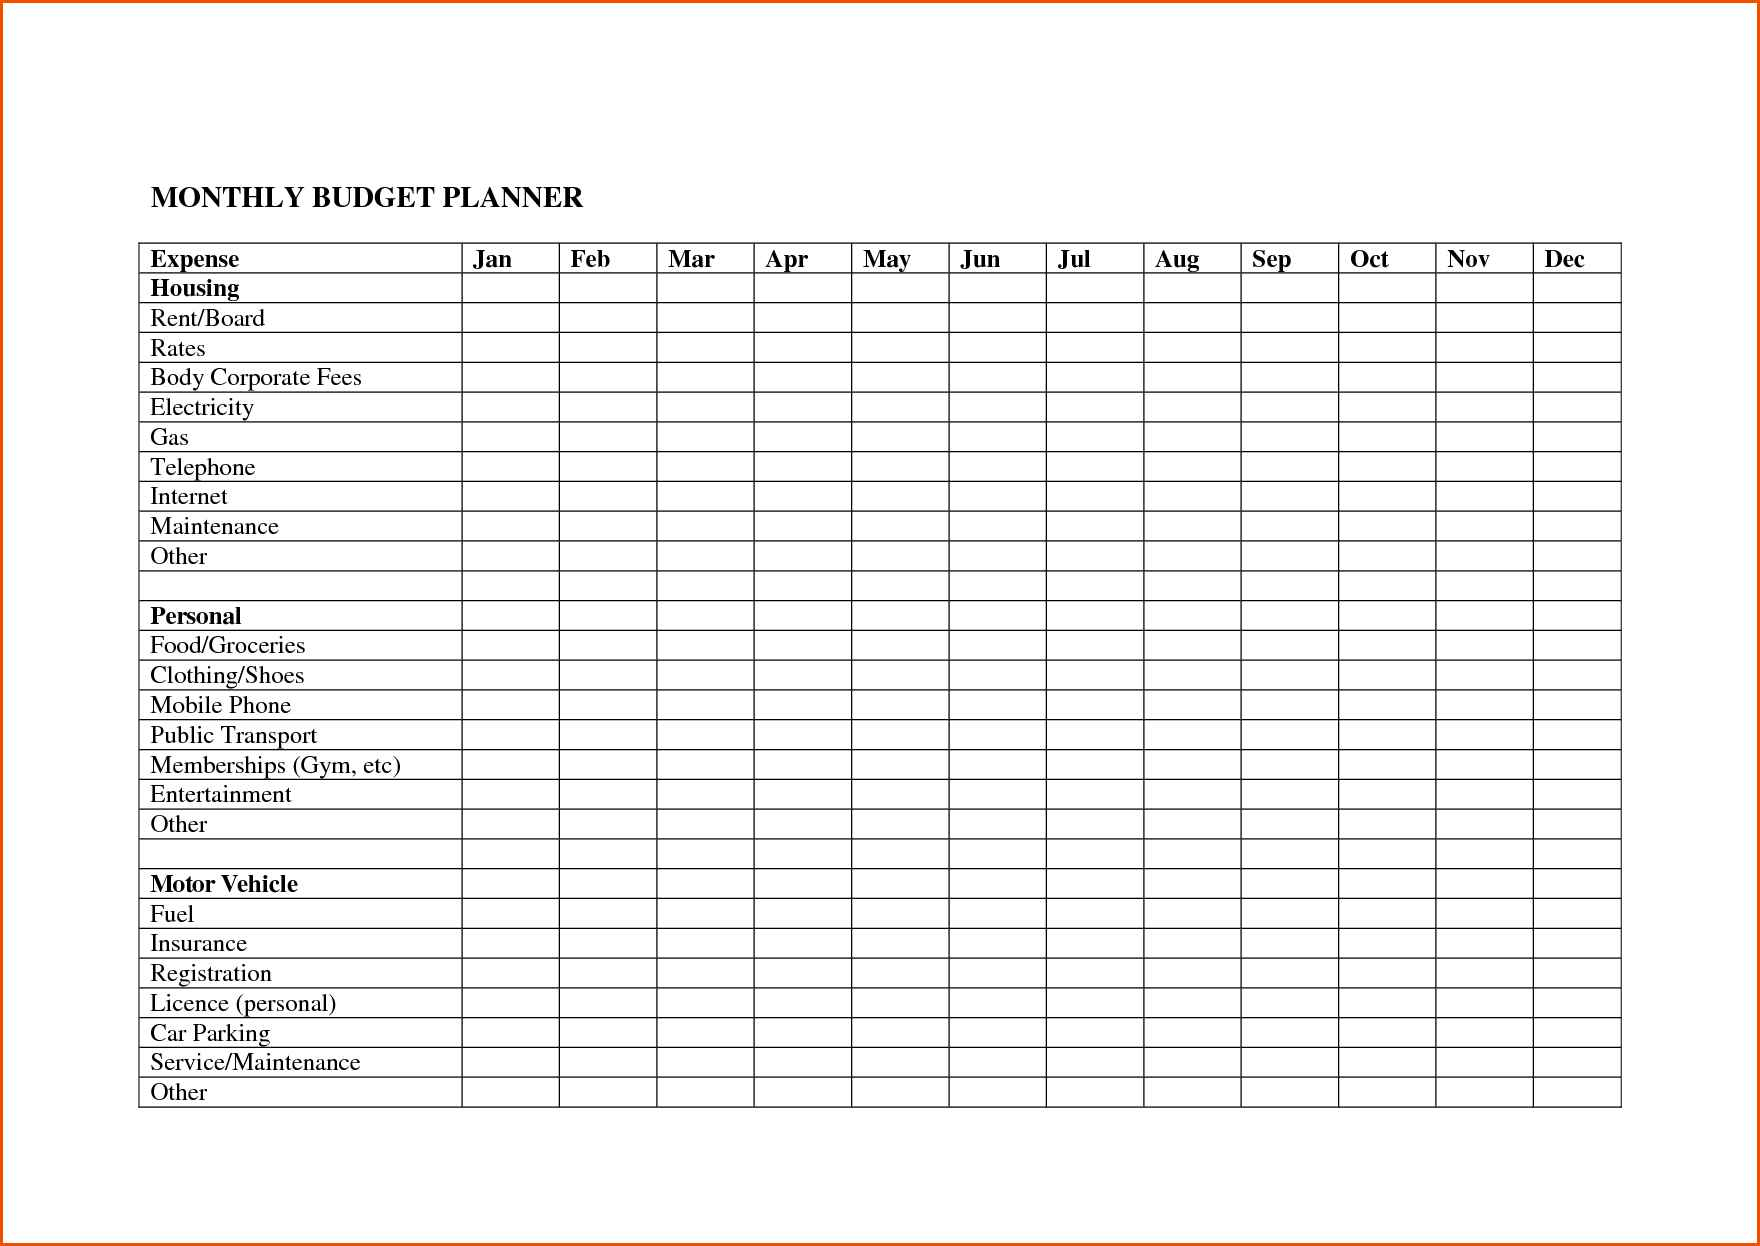 Monthly Bills Spreadsheet Throughout Monthly Budget Excel Spreadsheet Template Free With Bill Plus Bills